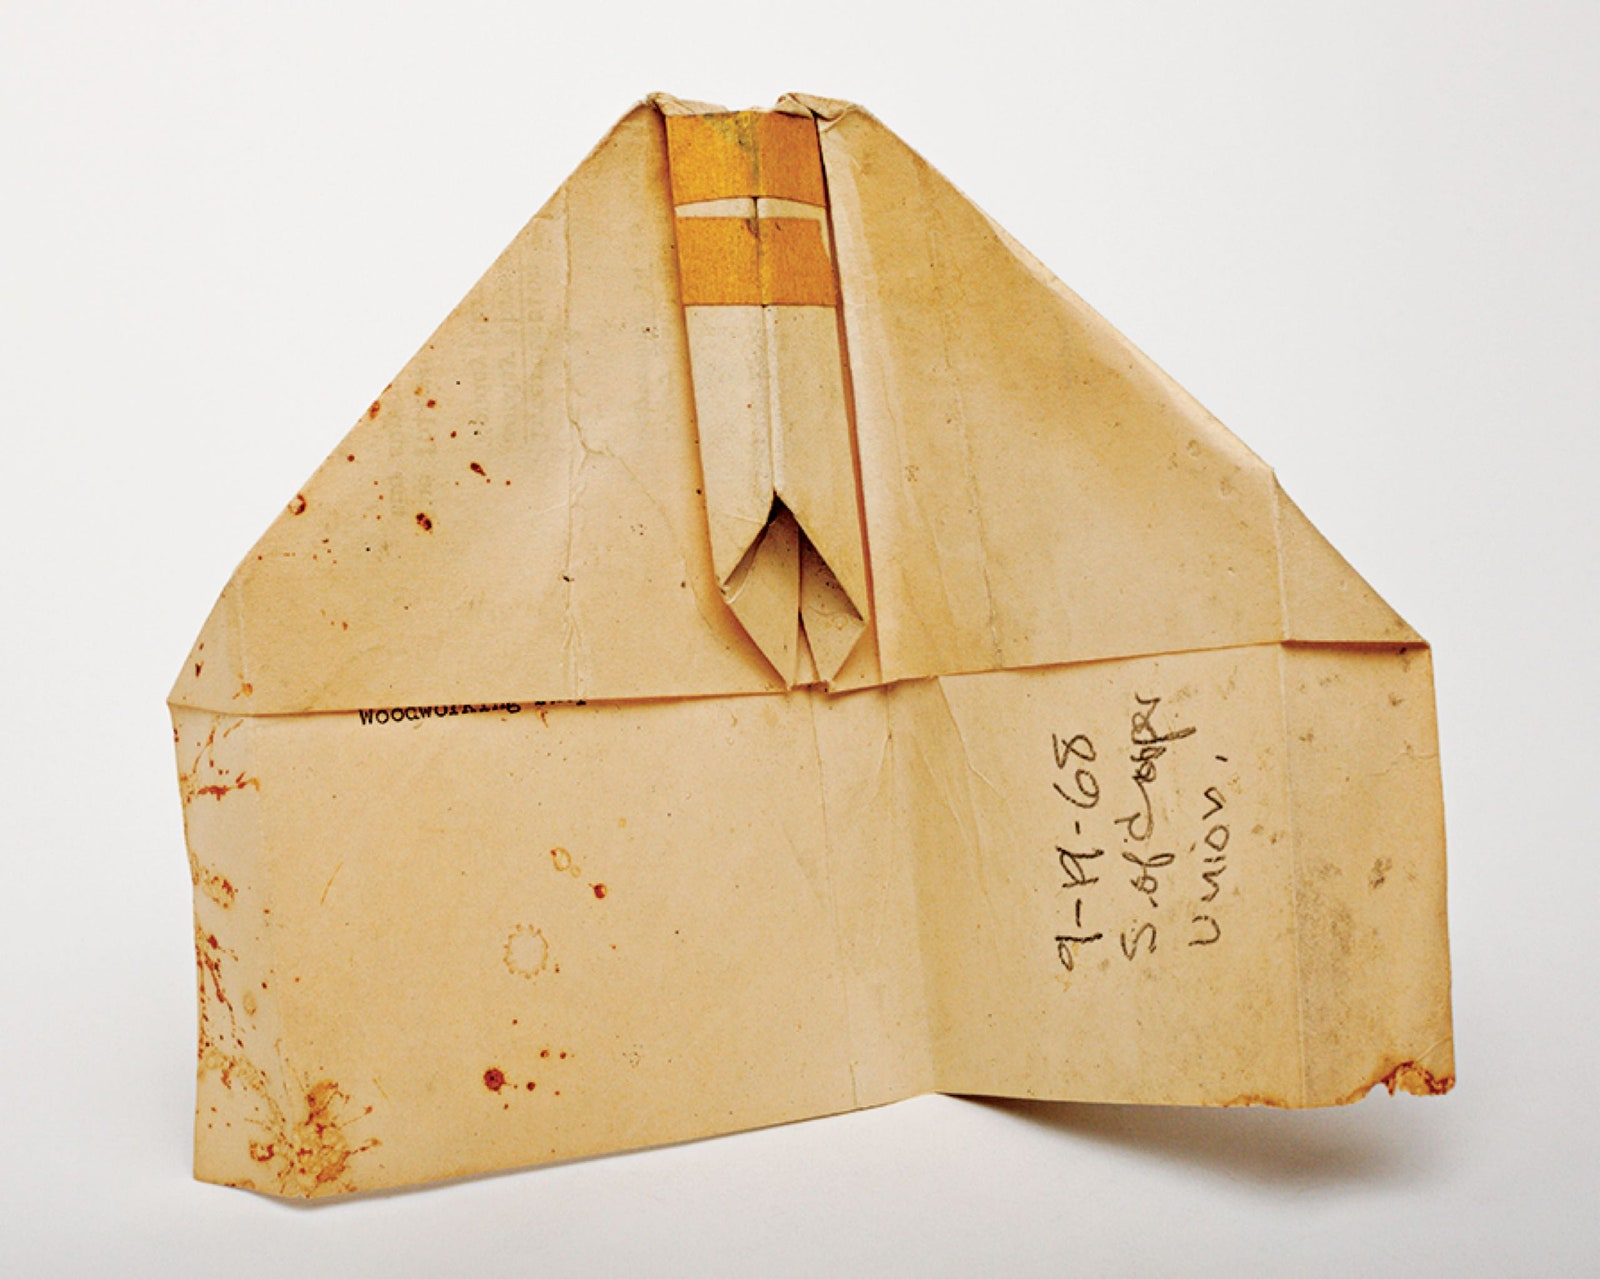 harry-everett-smith-paper-airplane-everythingwithatwist-07